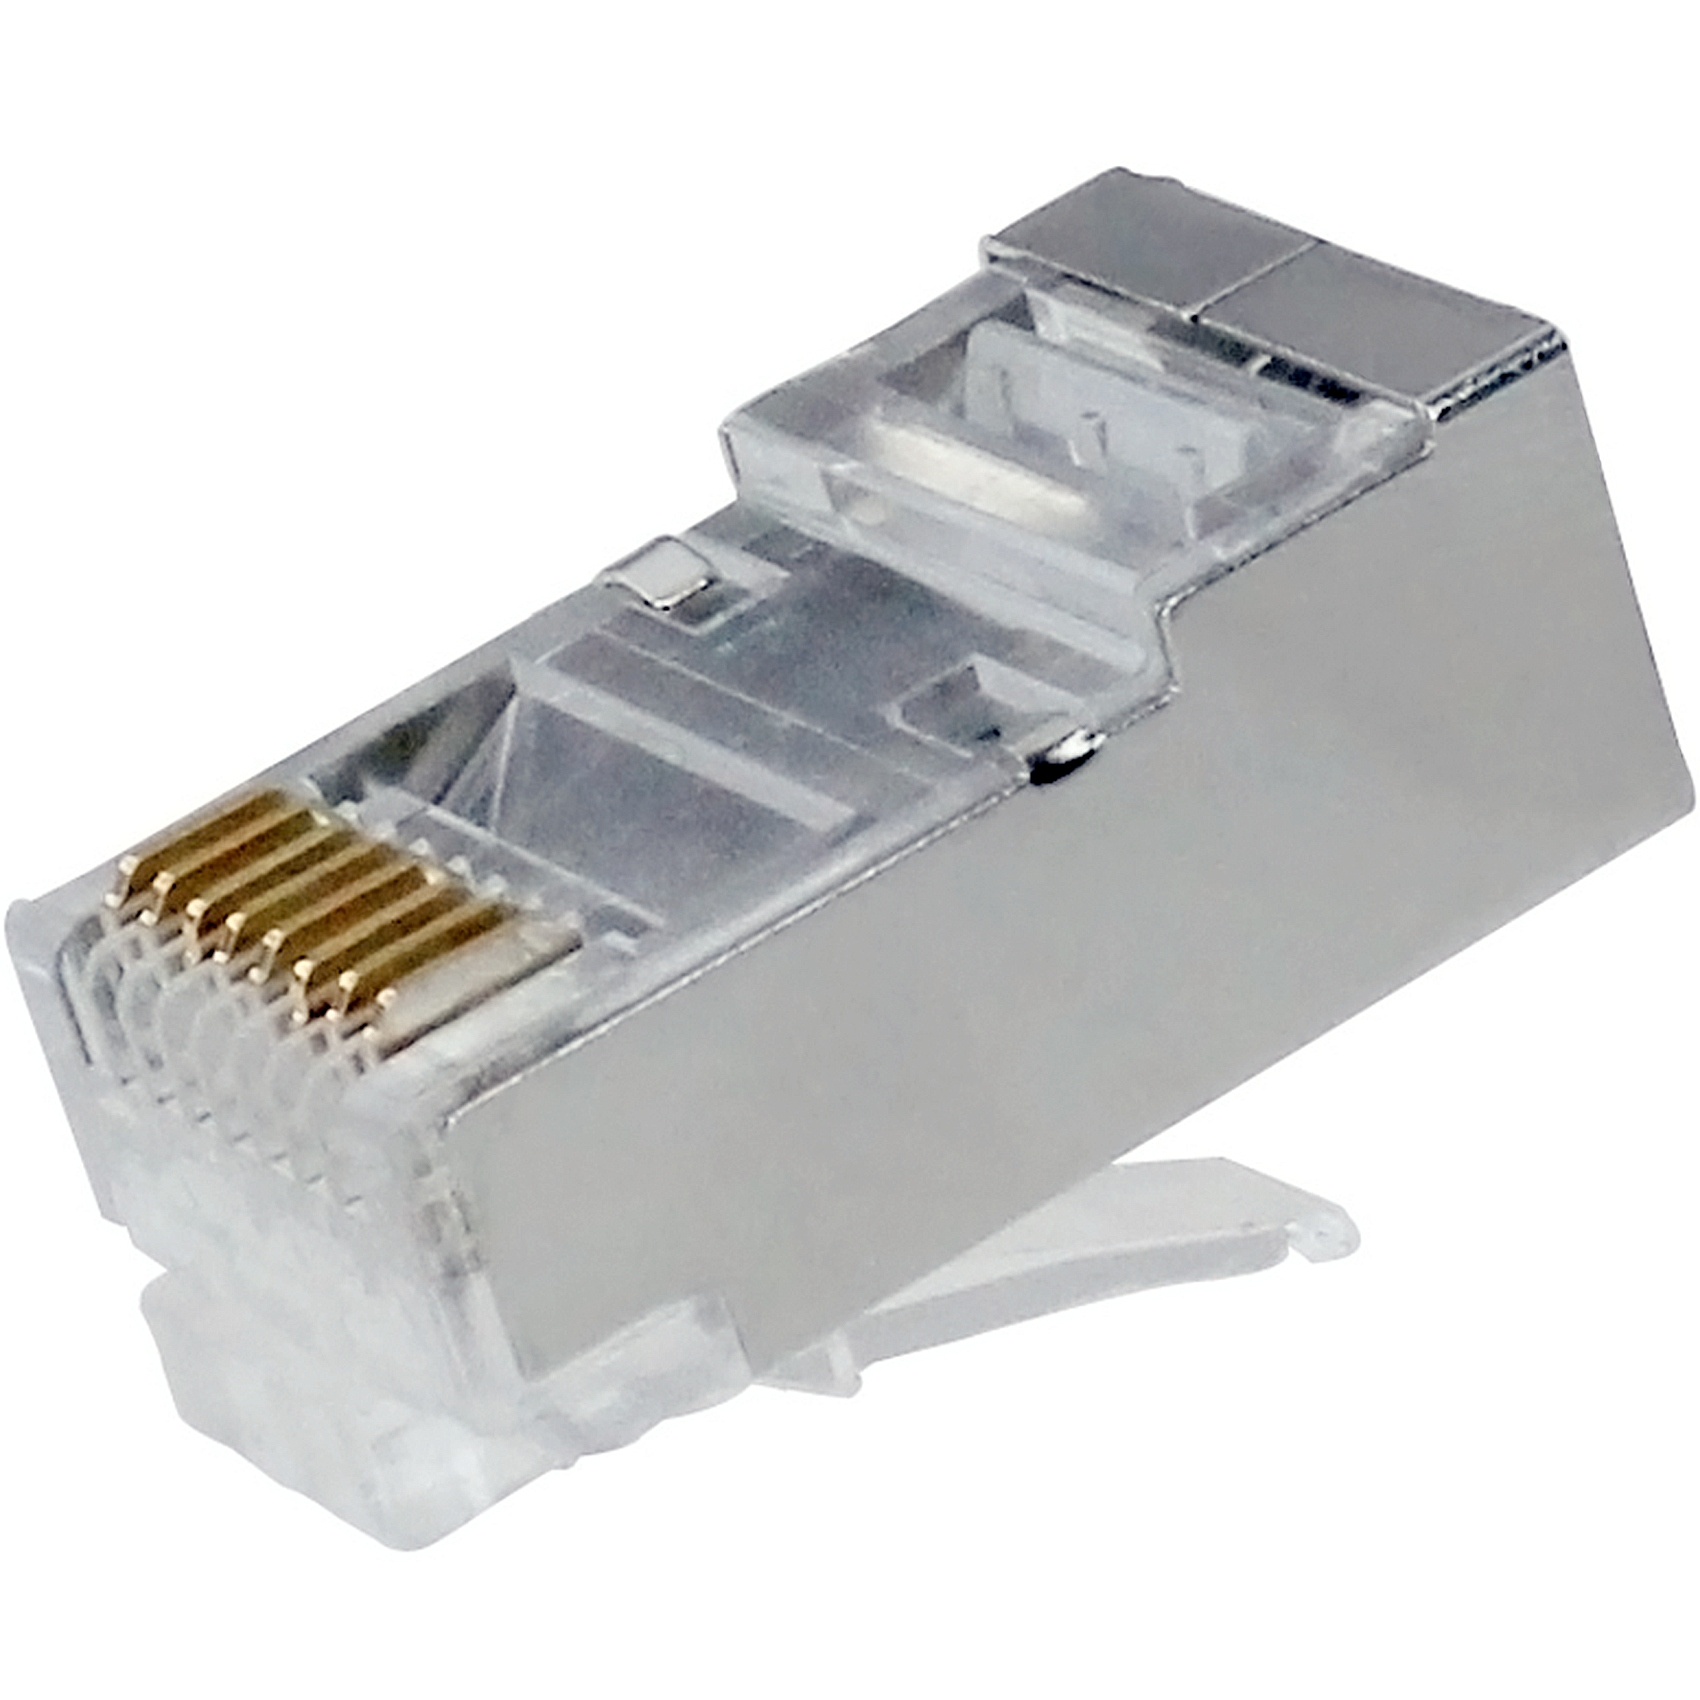 Rj45 Cat6 Cat6a Shielded Long Body Modular Plug For